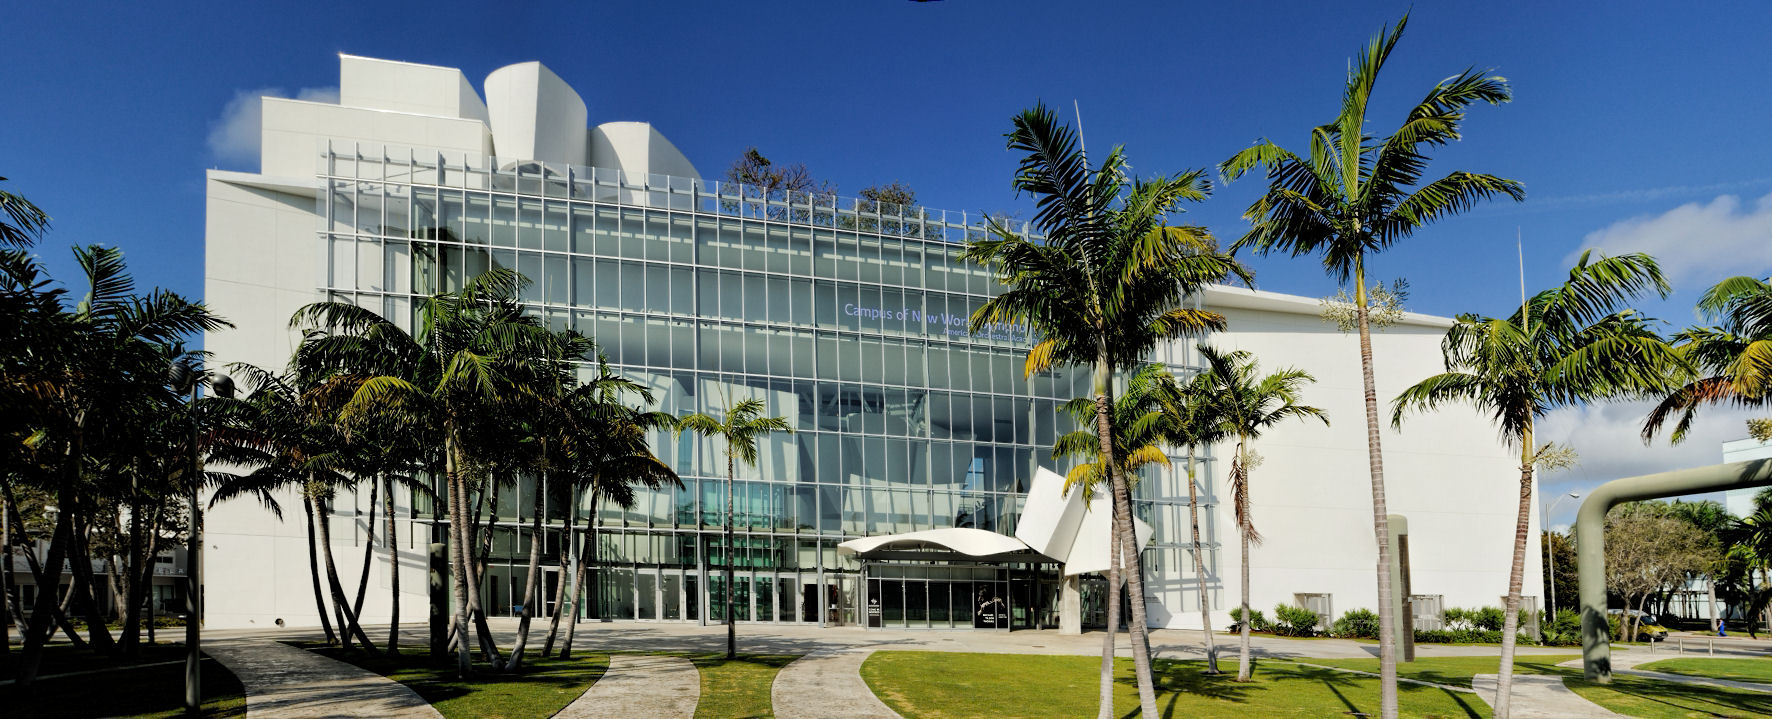 From High Tech to High Fashion: Best Places to Network in Miami